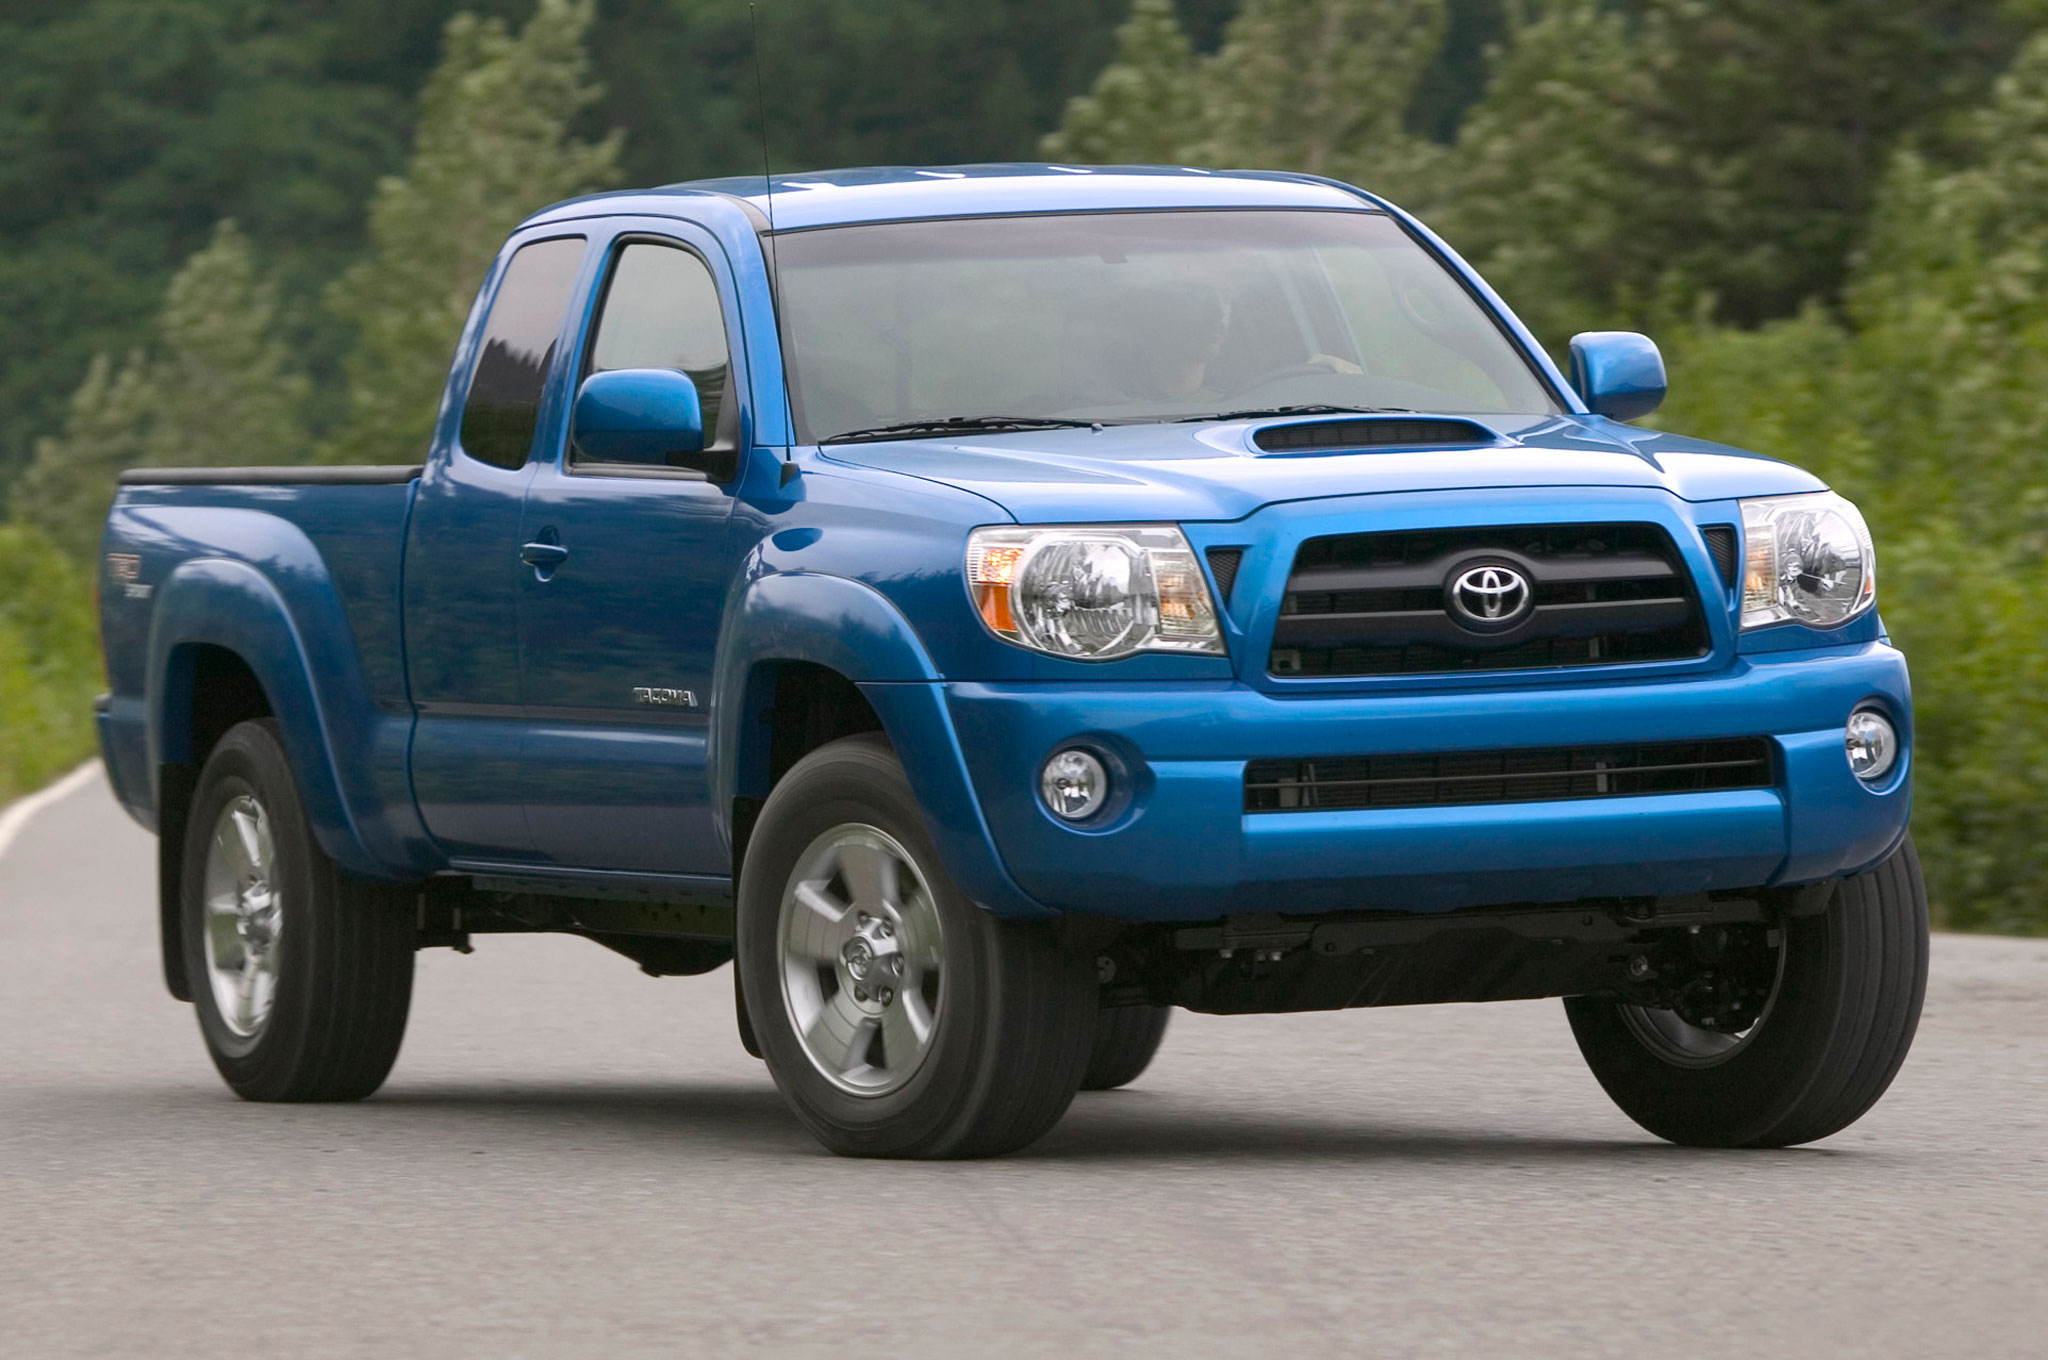 c1af18264a8a3 20 Years of the Toyota Tacoma and Beyond: A Look Through the Years ...